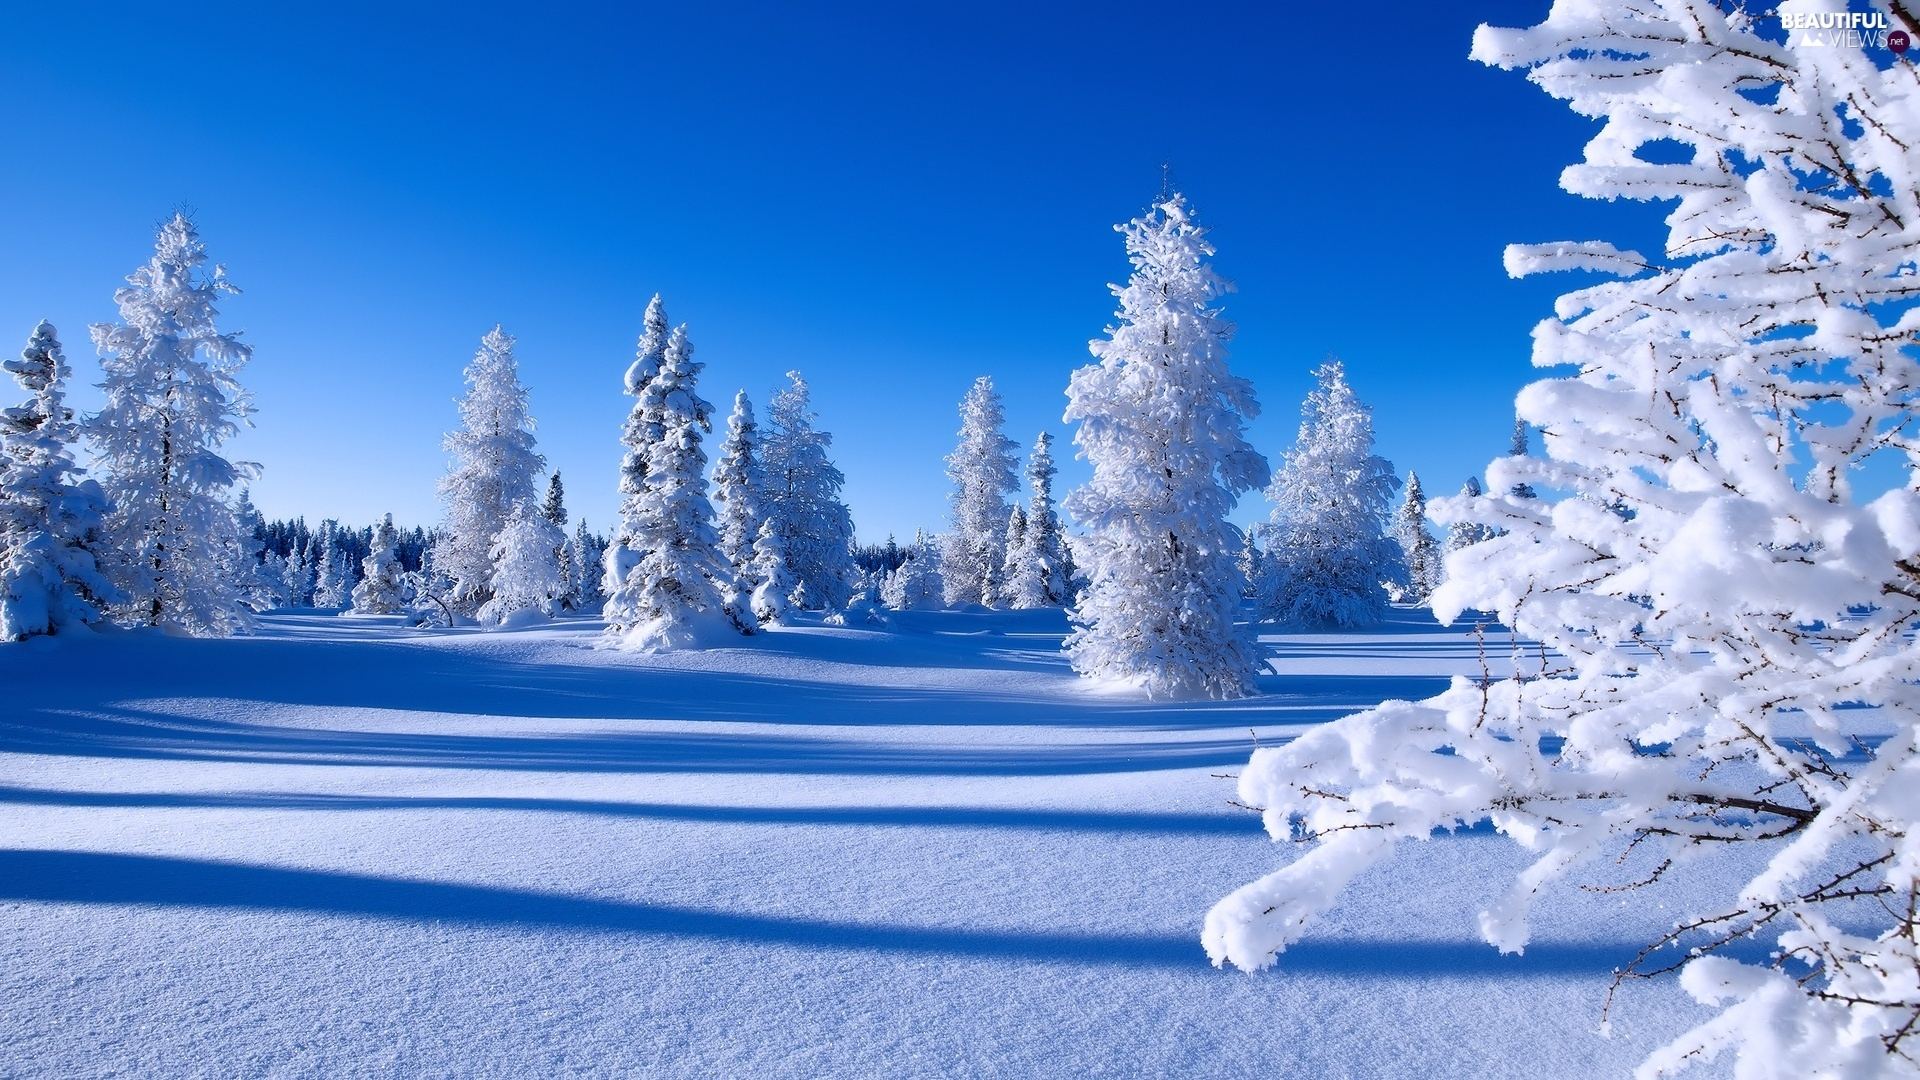 Snowy winter viewes spruces trees snow beautiful for Desktop gratis inverno